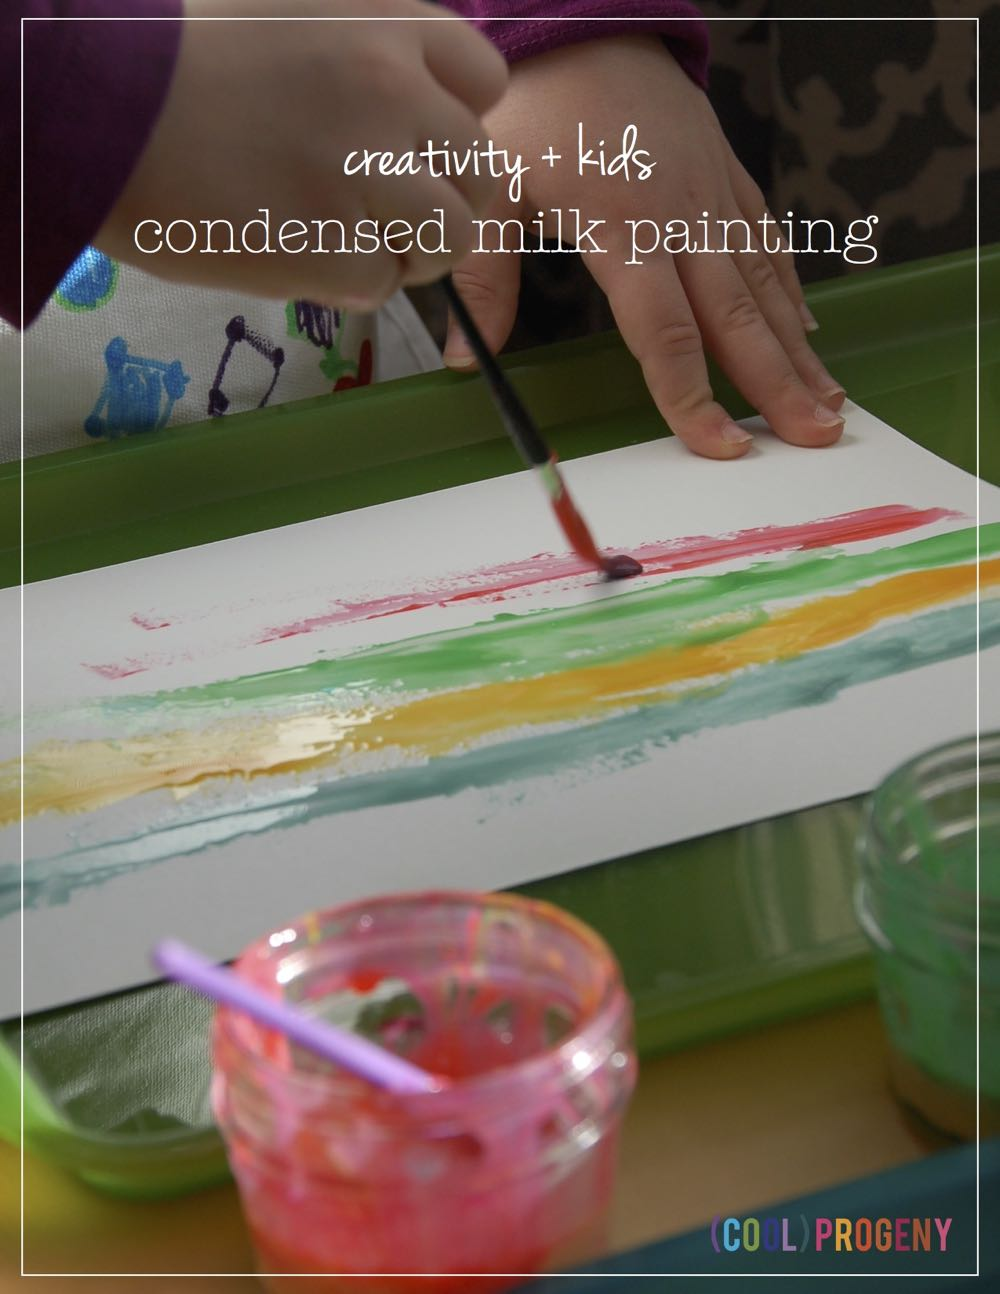 condensed milk painting - (cool) progeny